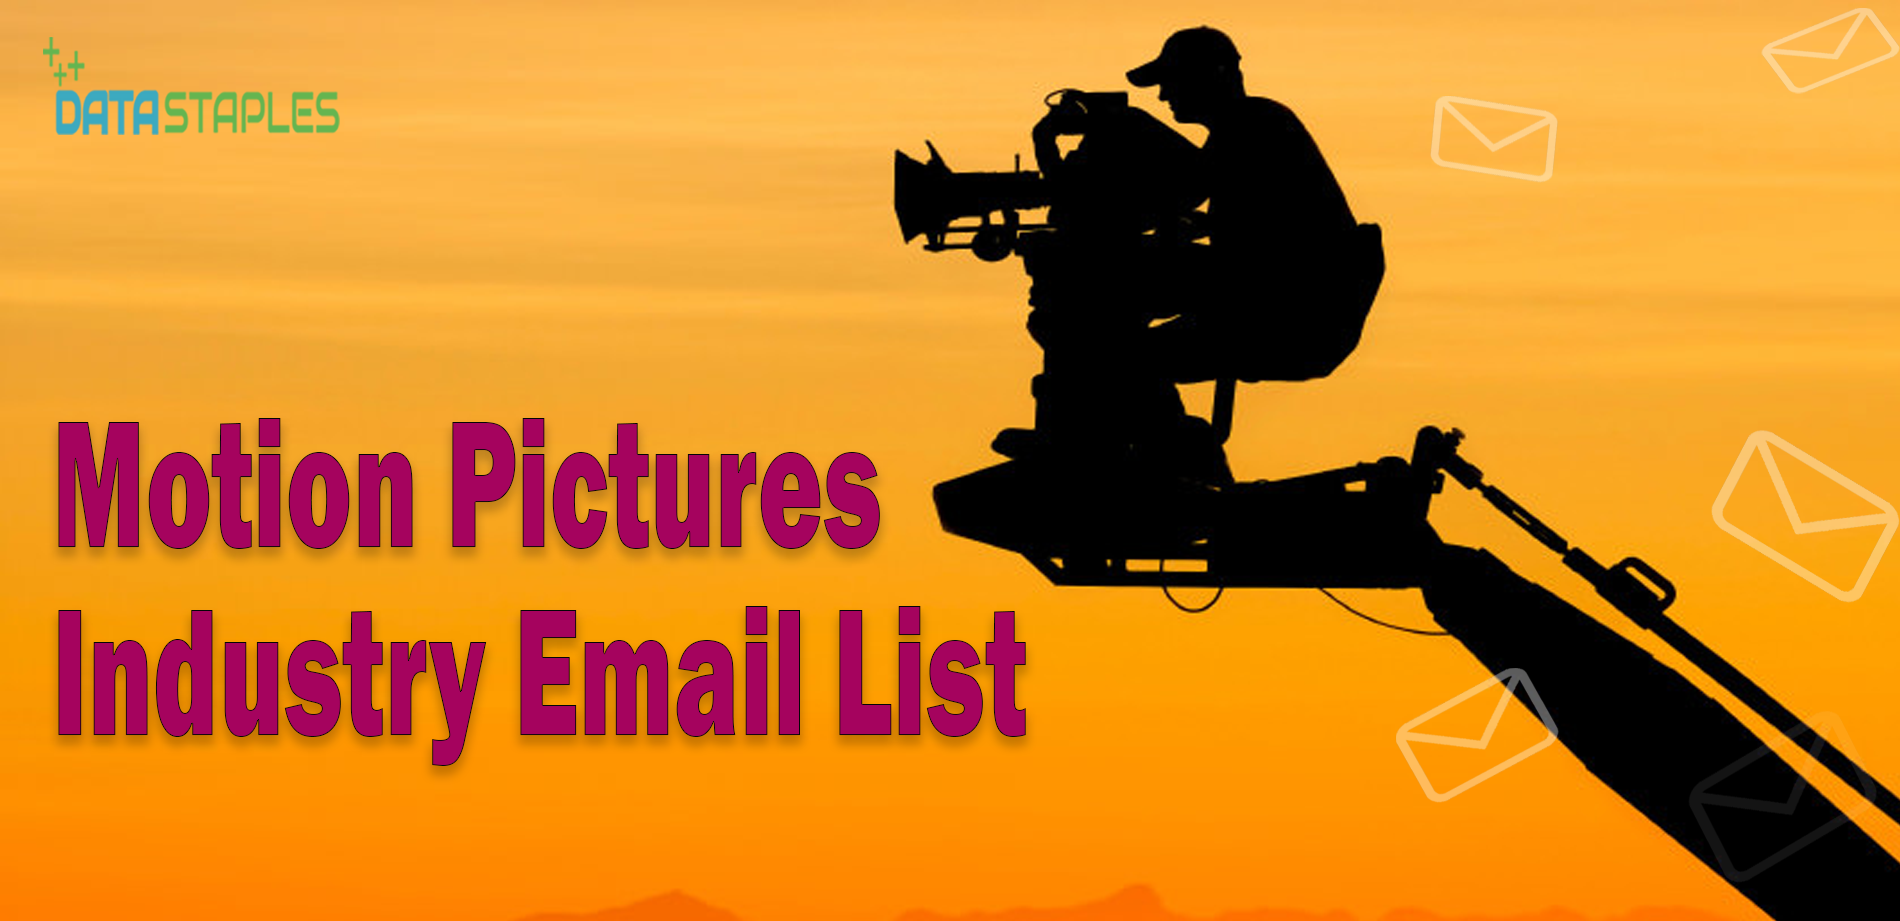 Motion Pictures Industry-Email List   DataStaples